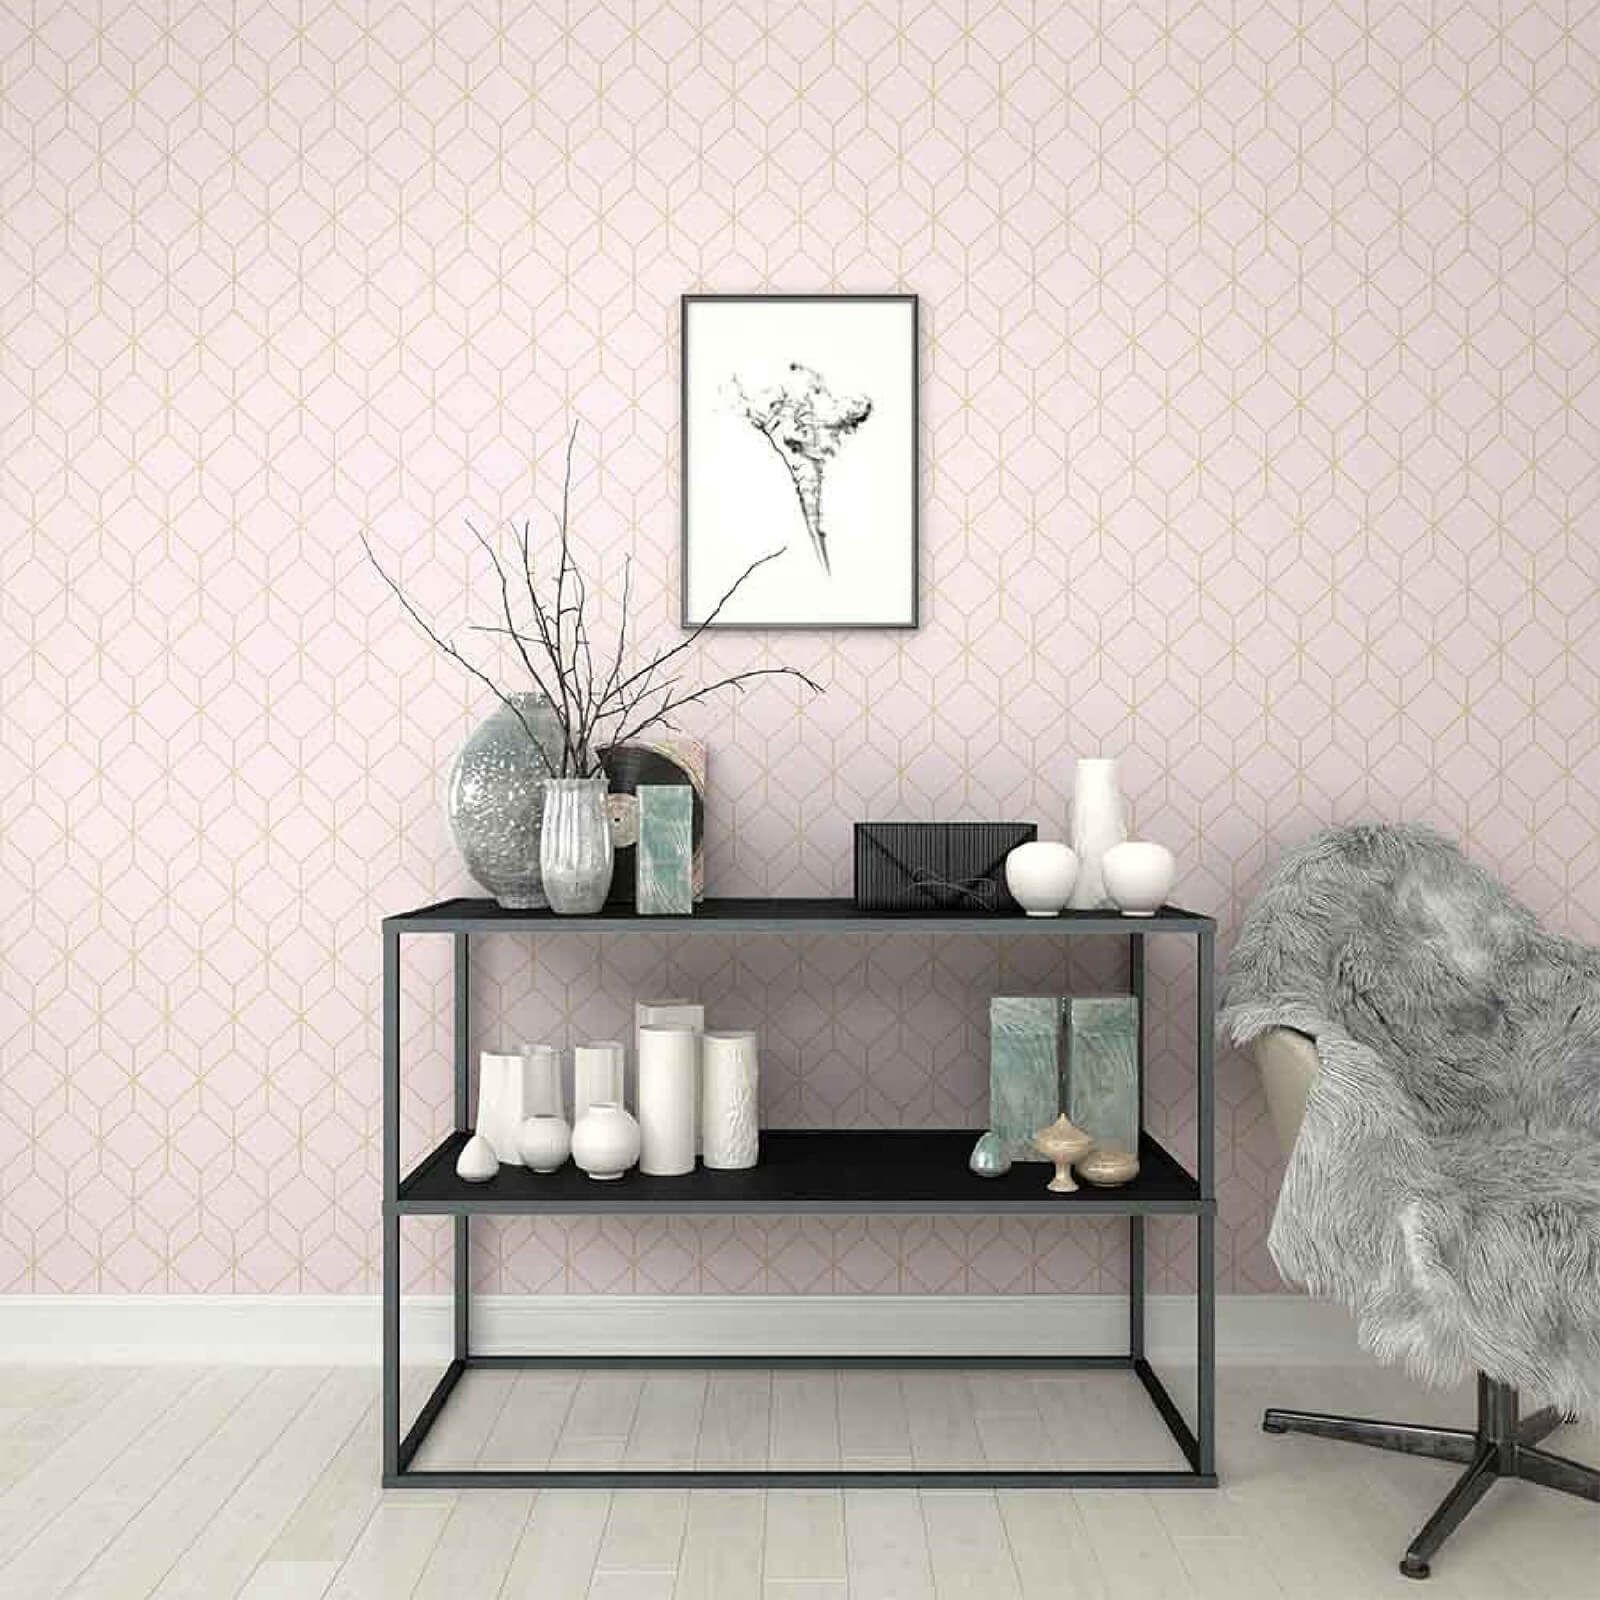 Superfresco Easy Blush/Rose Gold Geometric Myrtle Wallpaper